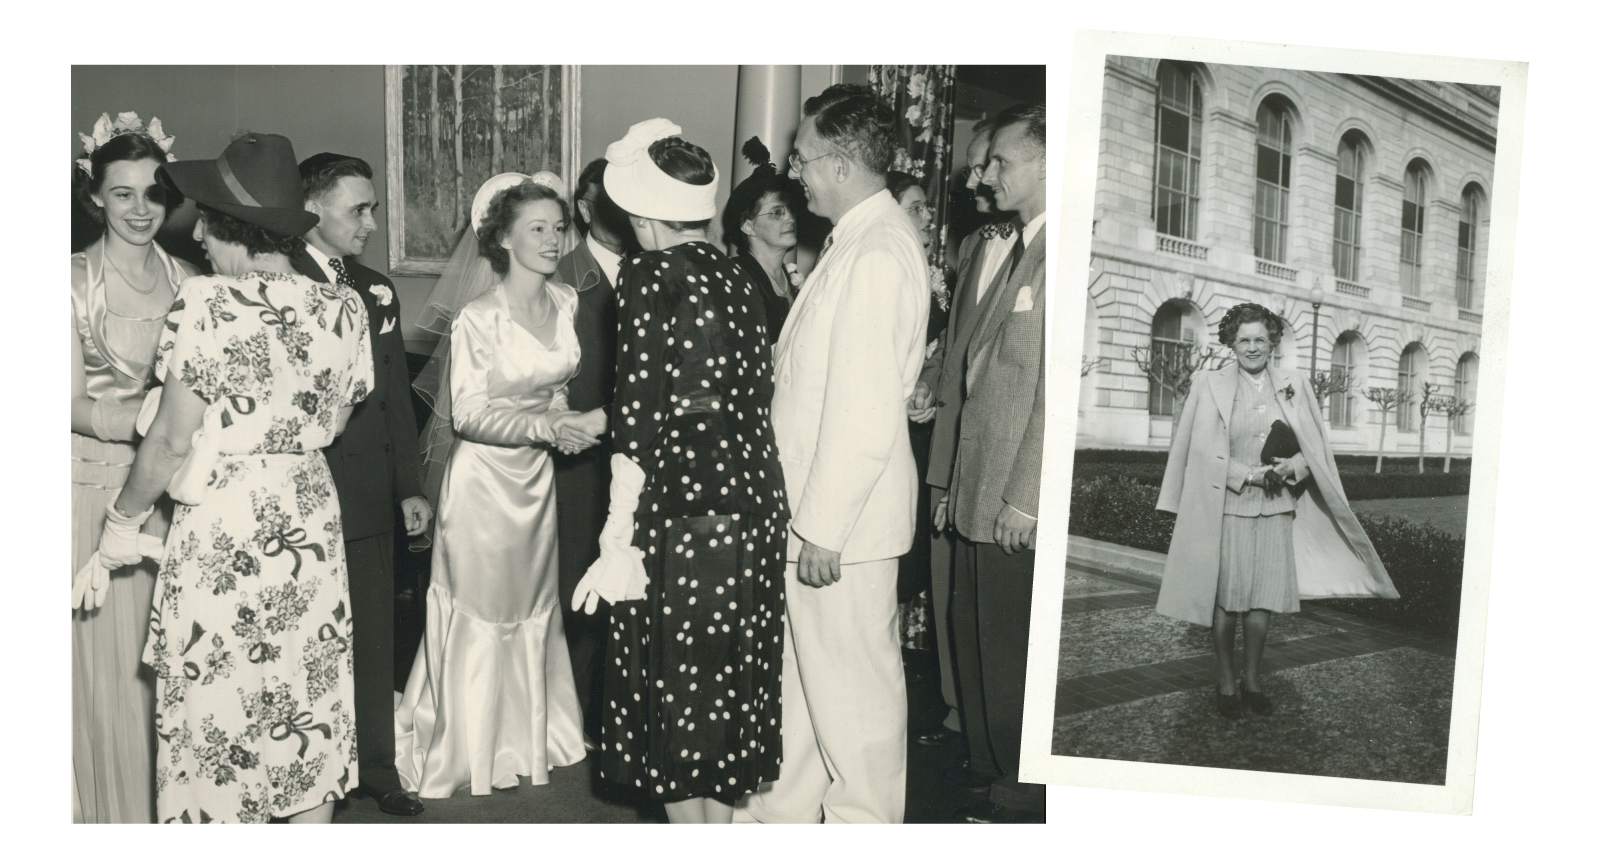 A Beautiful Life: Anne Rolt-Wheeler Skidmore married Merle Skidmore on July 25, 1949. Her sister Pat (pictured left) was a bridesmaid, and Denison President Kenneth Brown and his wife (greeting the bride) were guests. Ruth Hobart Rolt-Wheel…